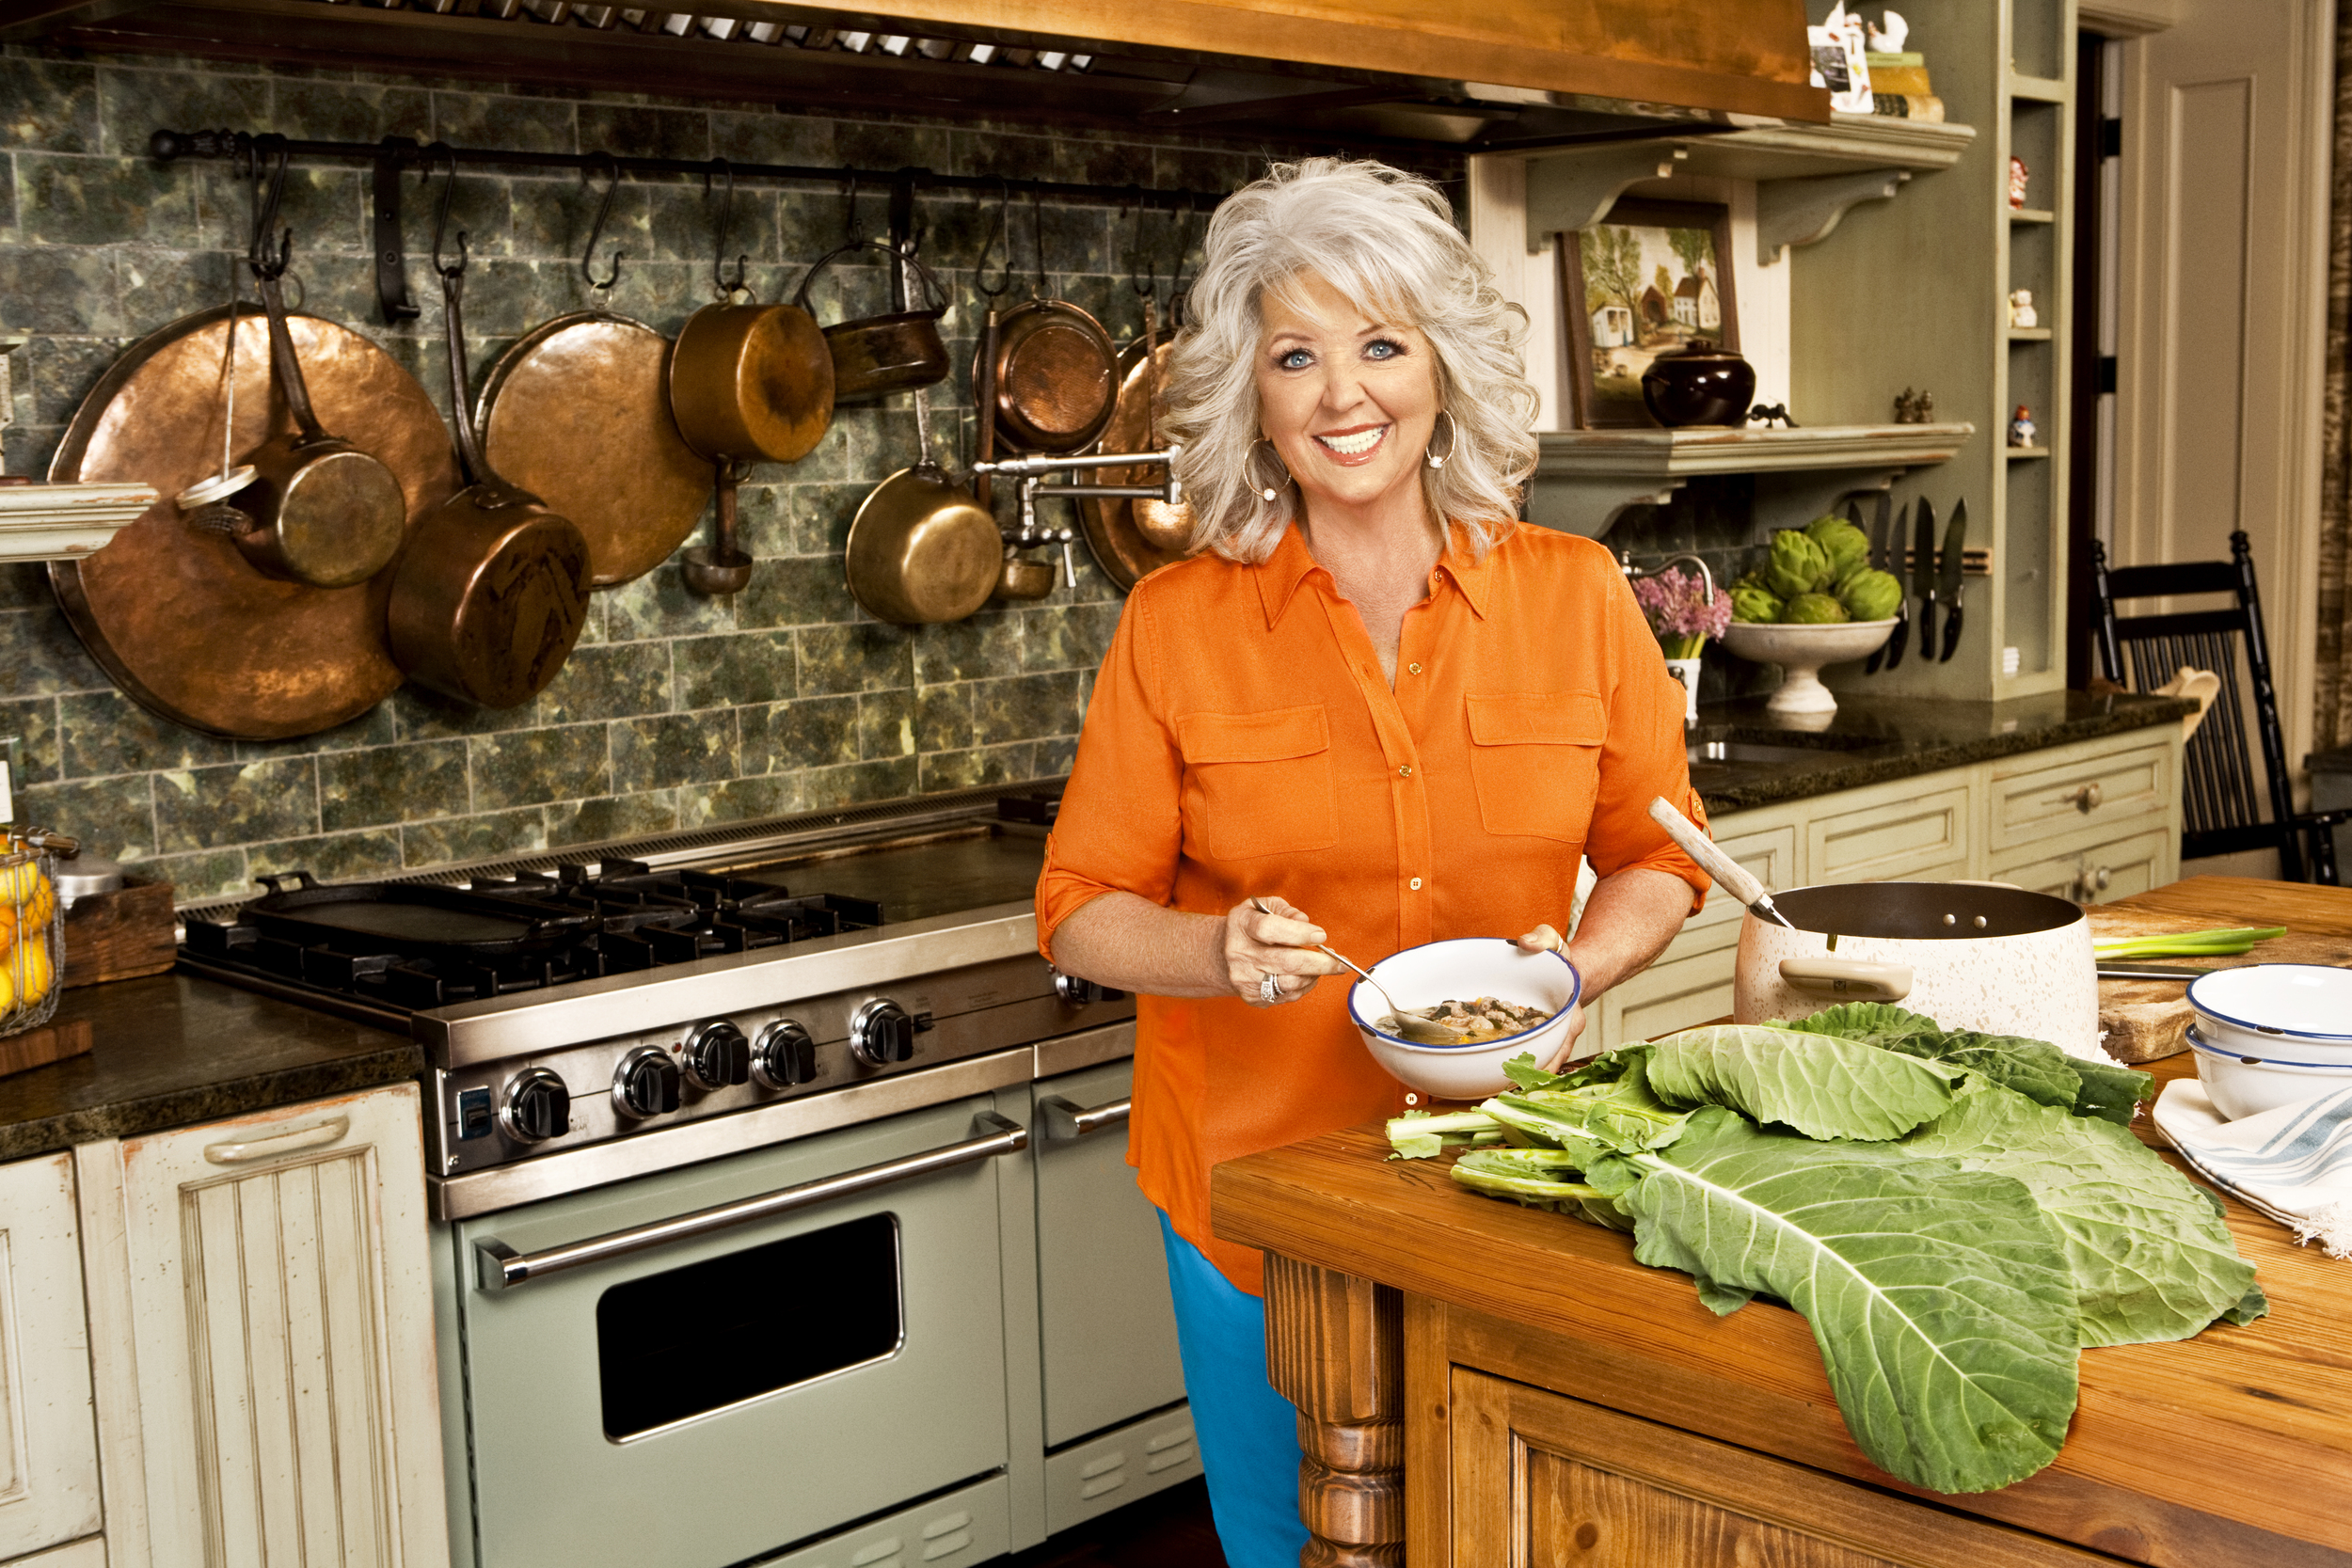 paula deen, new book, dancing with the stars, food wine festival, valley forge casino resort, cooking demo, valley forge, king of prussia